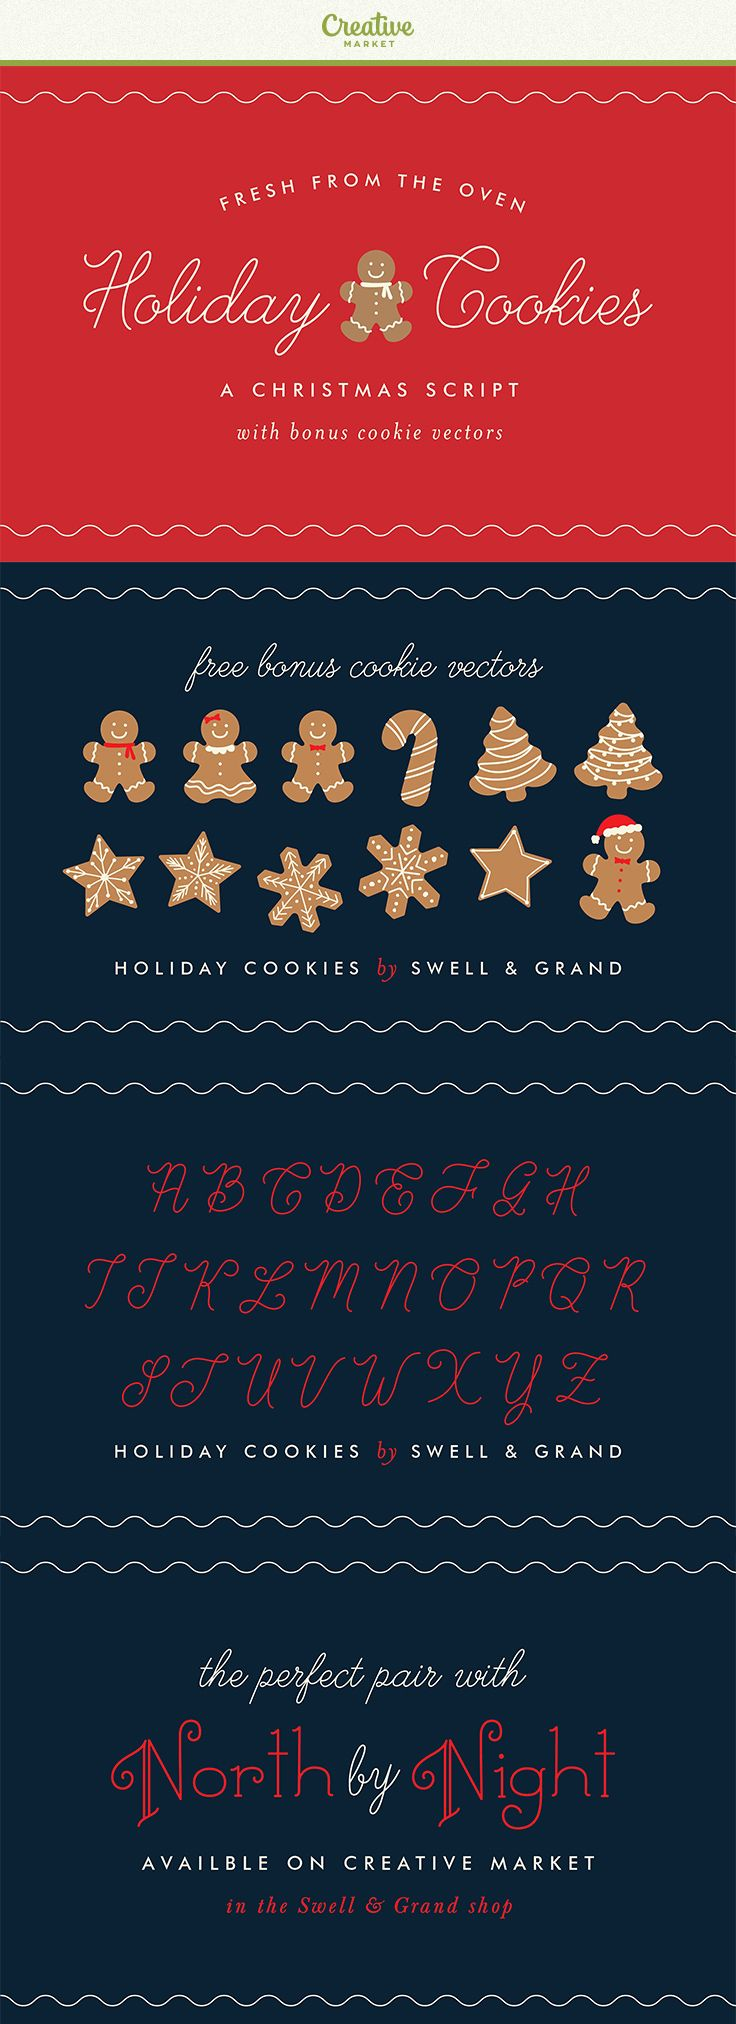 Holiday Cookies is an icing inspired Christmas script, perfect for gingerbread houses and hot cocoa.Holiday Cookies is suitable for Christmas cards, wedding invitations, branding, stationery, blog design, custom art, custom stamps, custom embossers, or any design purpose. You can use it for your personal use, or for a commercial project. #affiliate